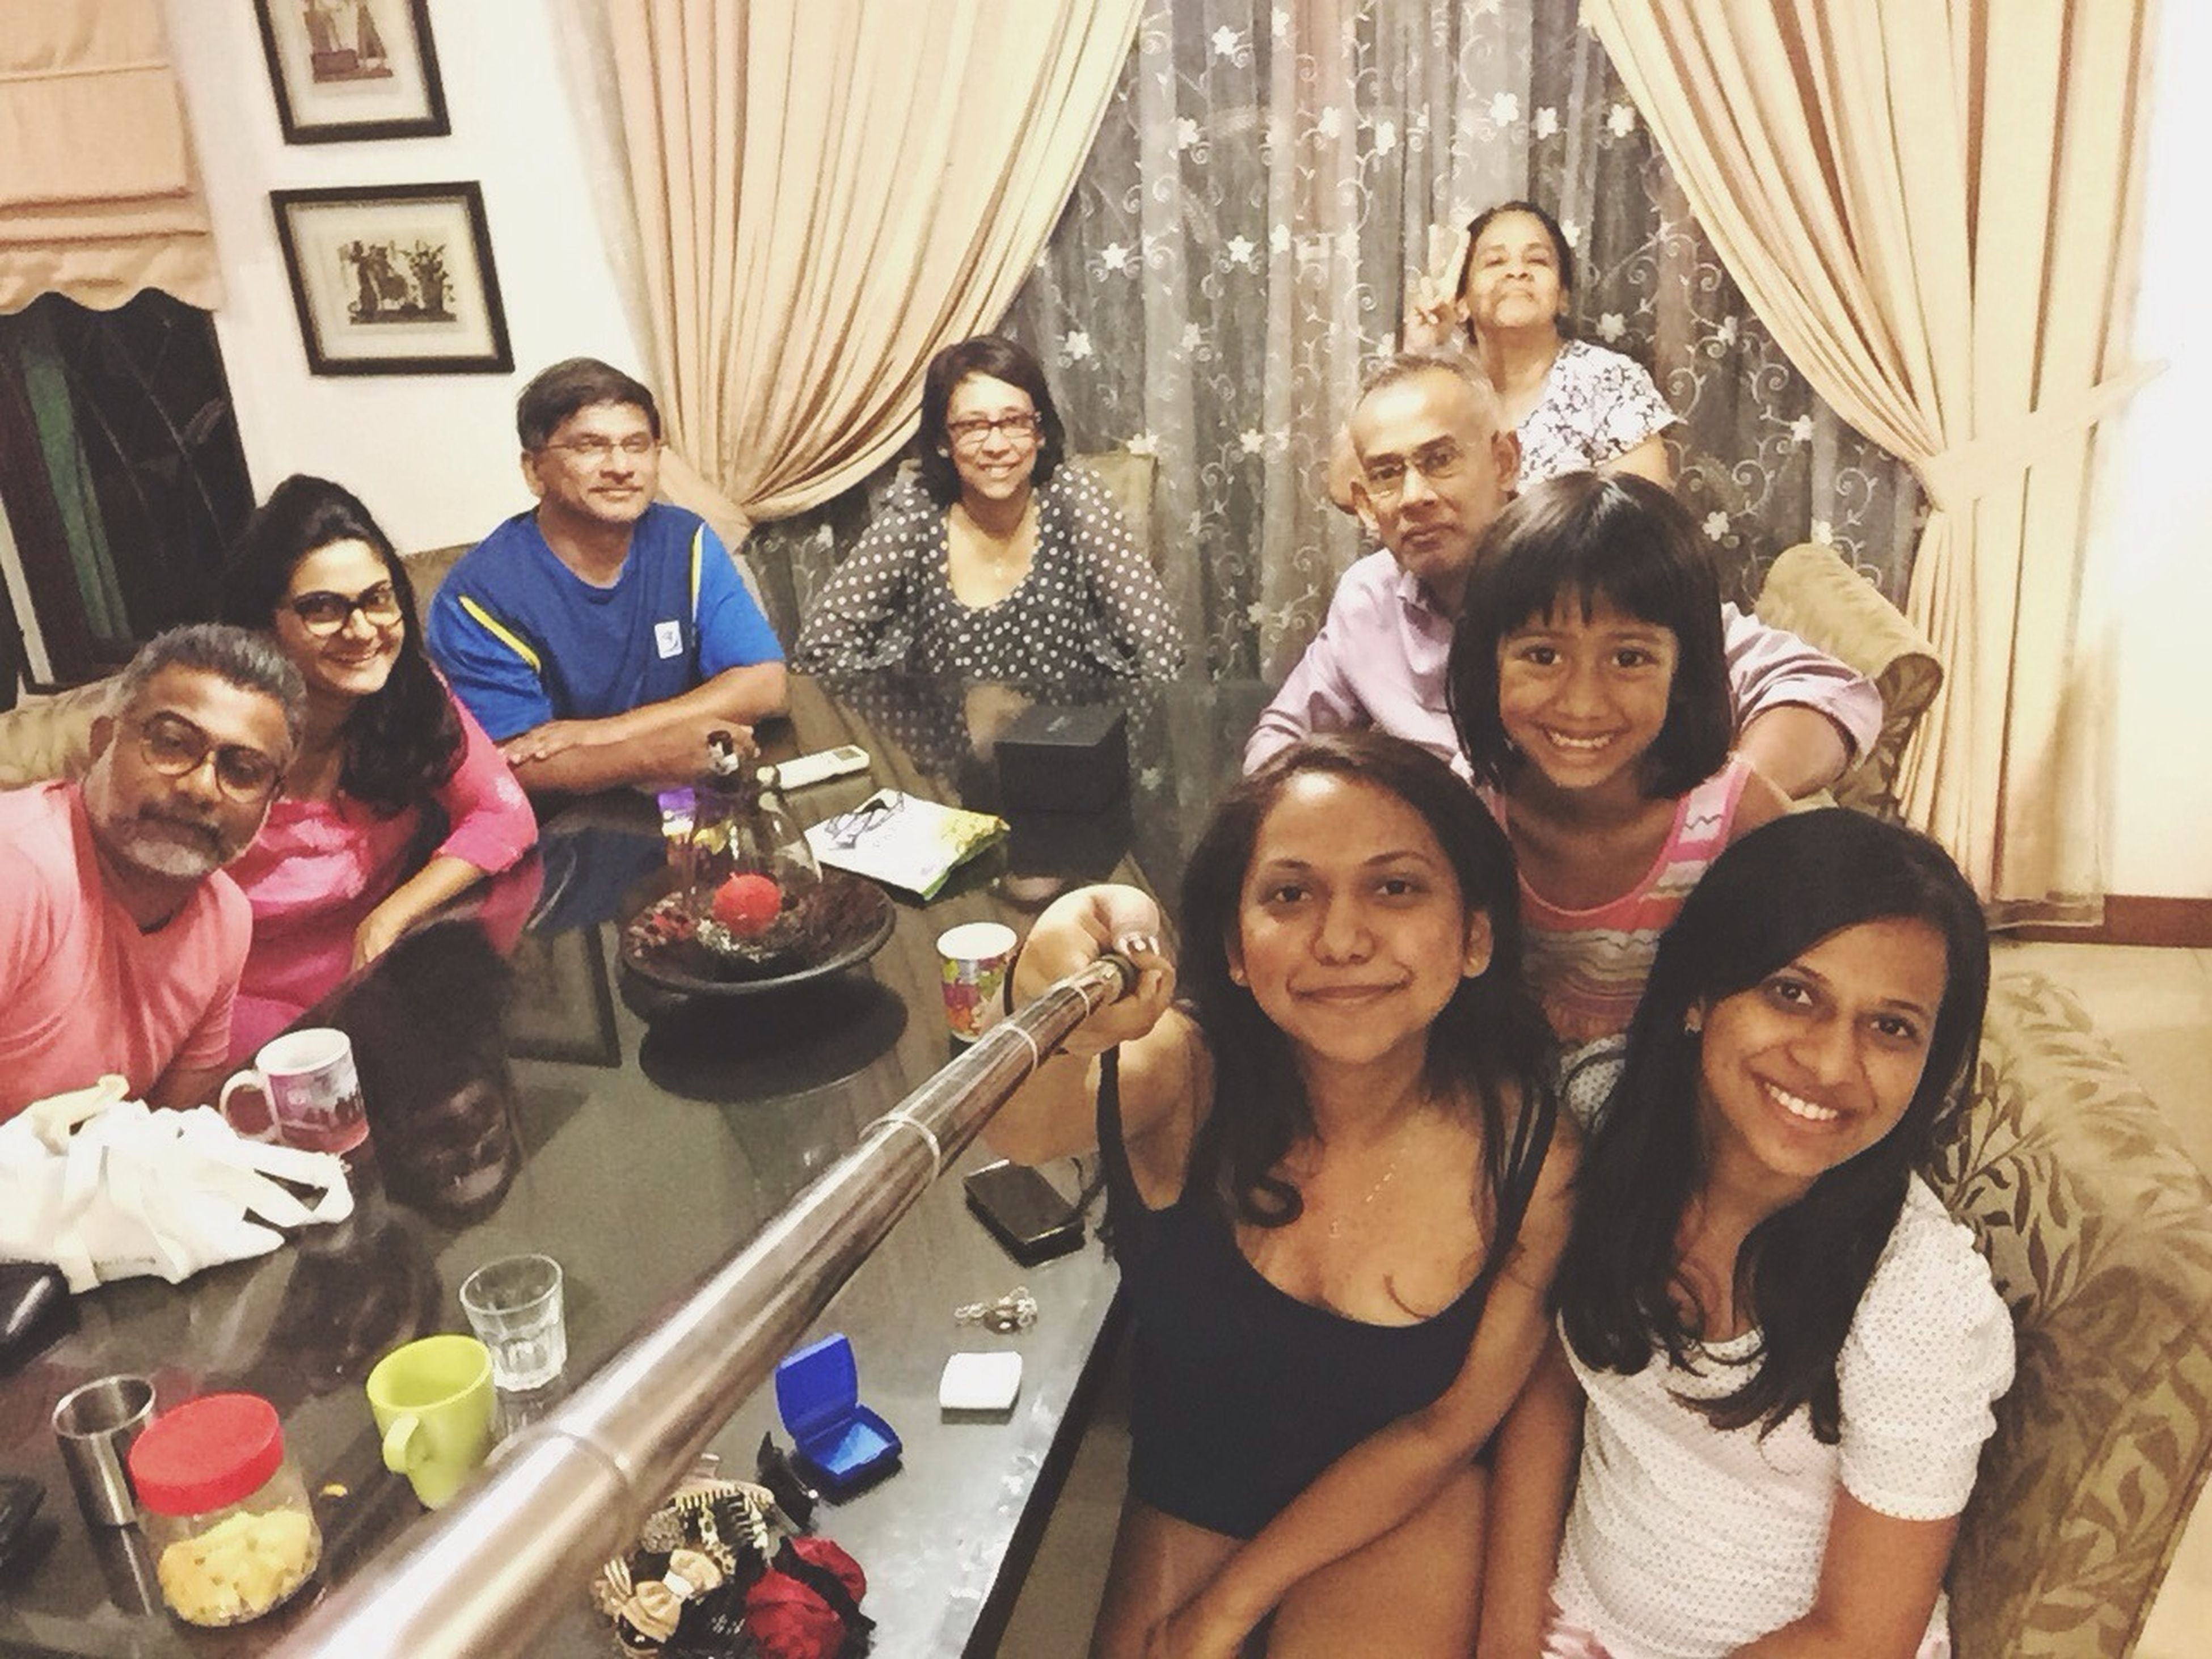 indoors, togetherness, lifestyles, portrait, looking at camera, happiness, leisure activity, person, smiling, front view, bonding, young adult, casual clothing, friendship, fun, celebration, enjoyment, young women